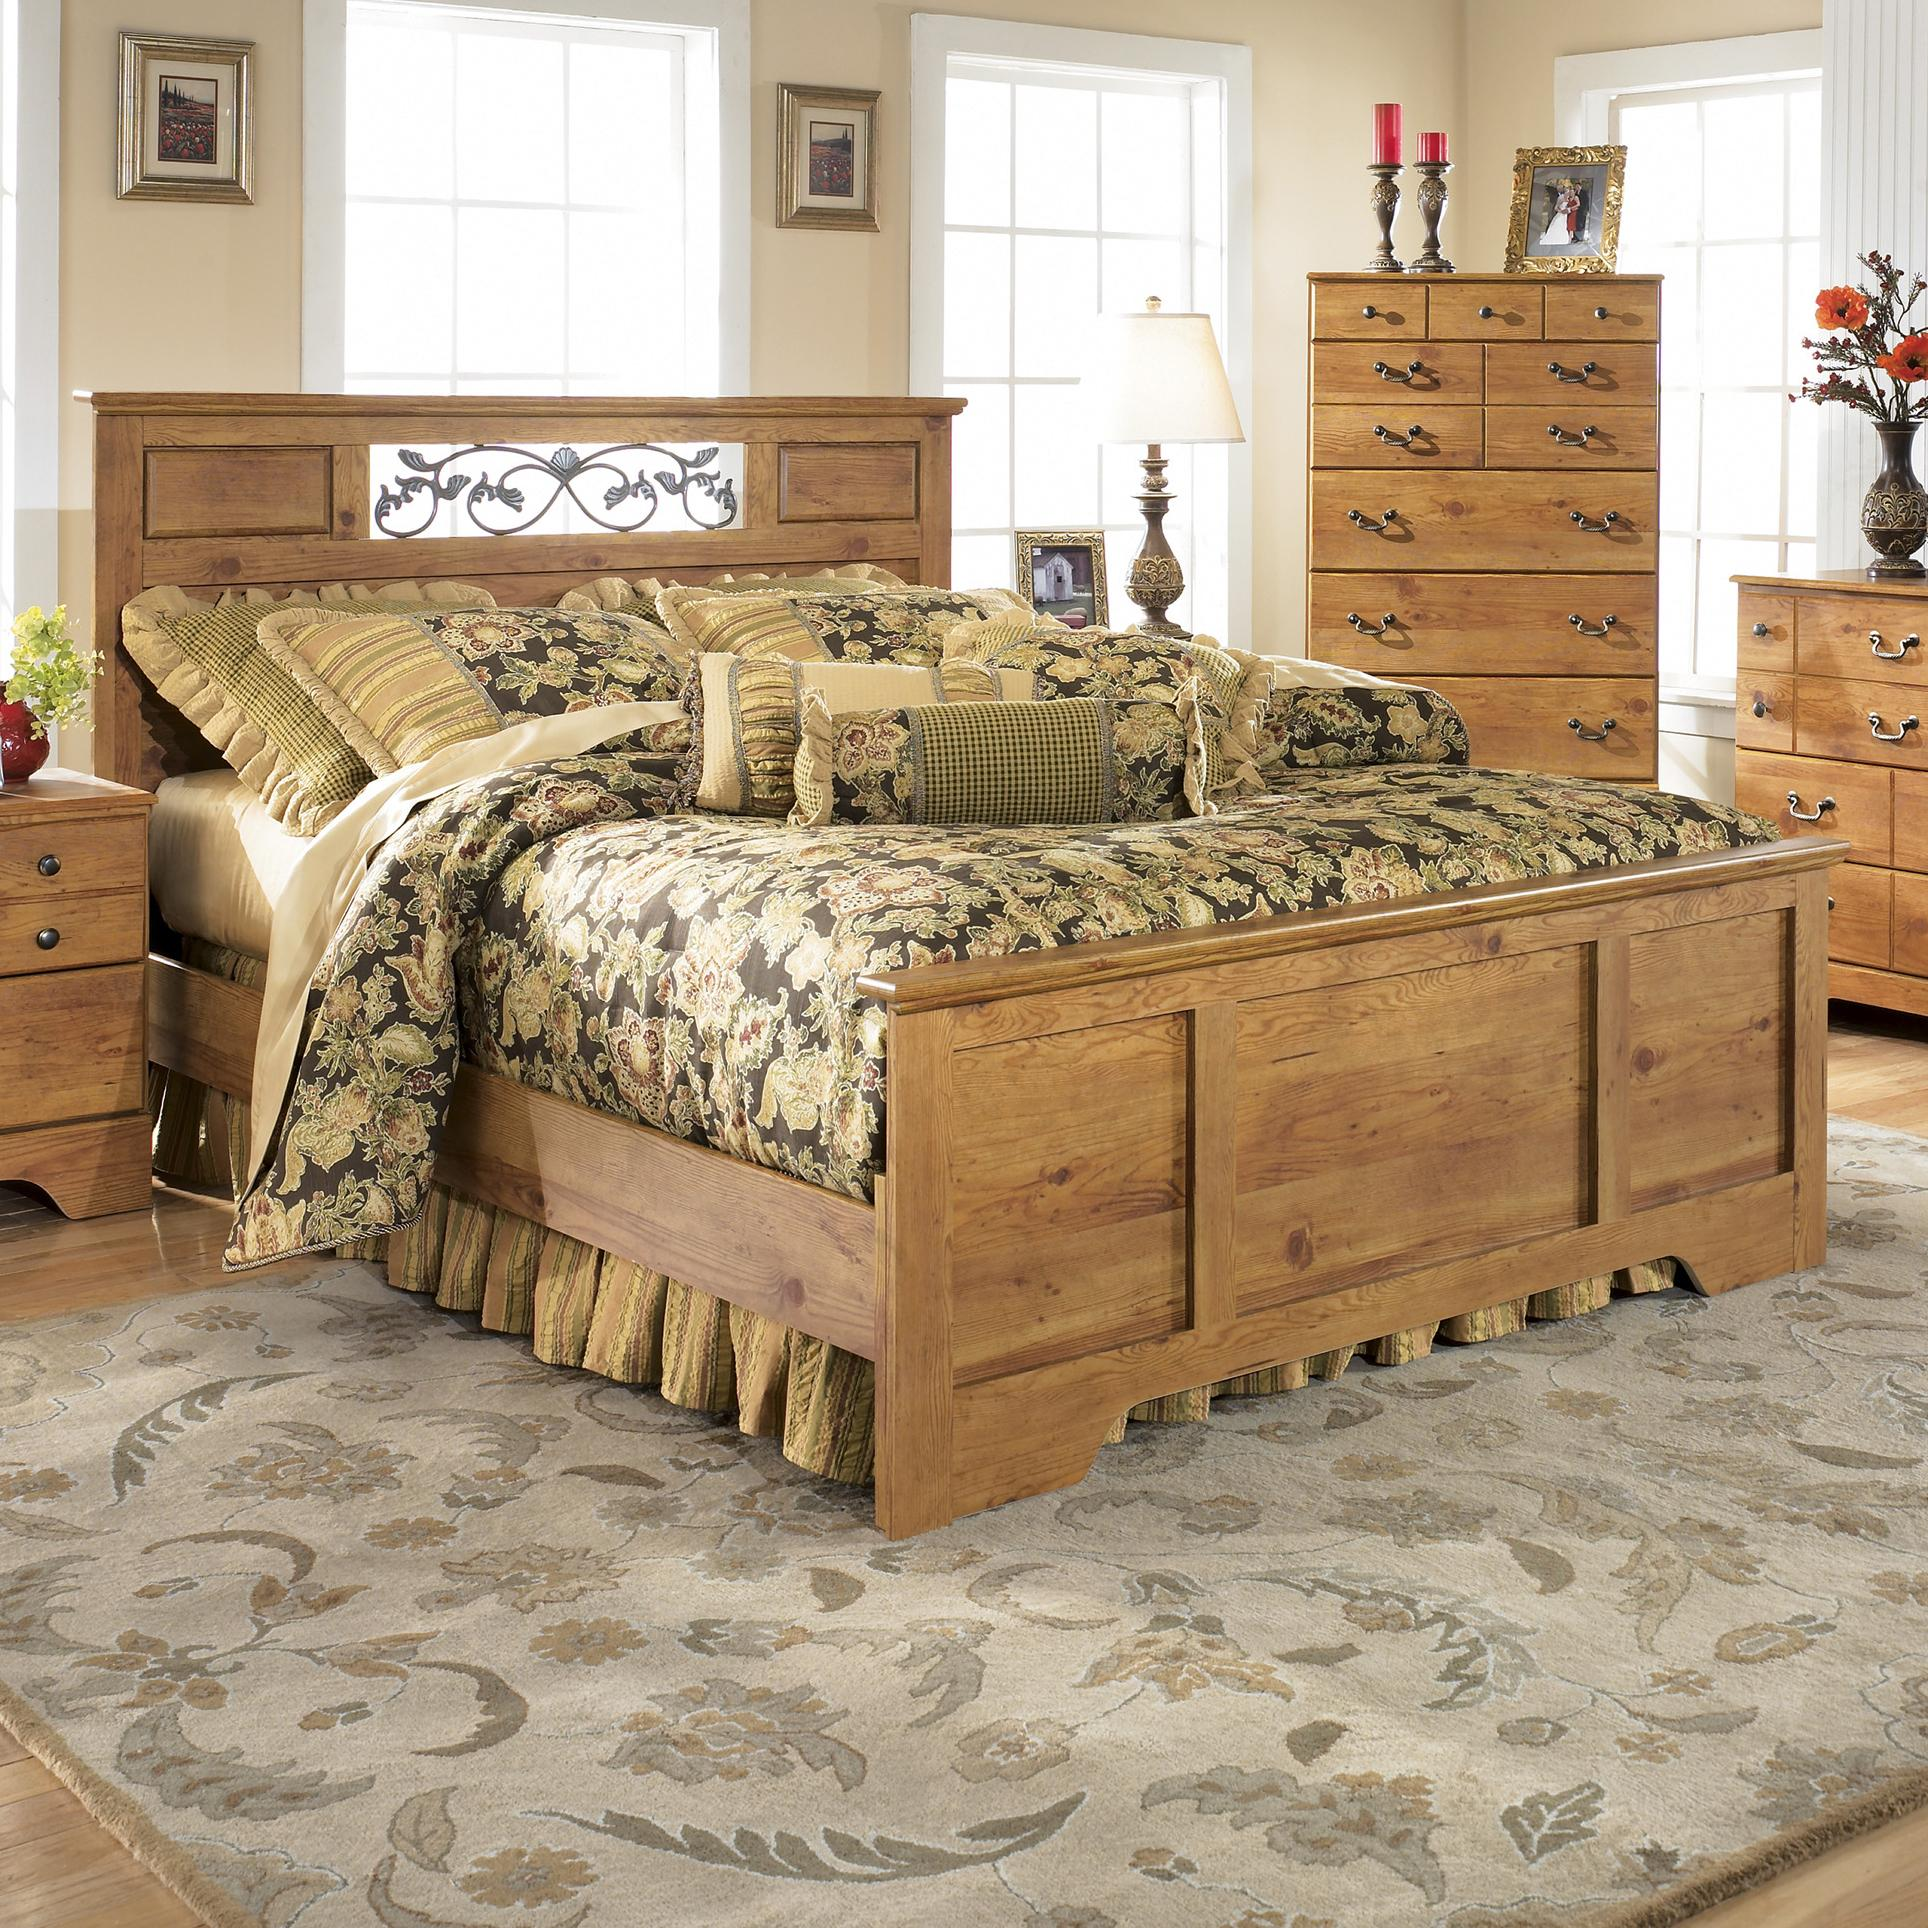 Ashley Home Furniture Albuquerque: Signature Design By Ashley Bittersweet Queen Panel Bed